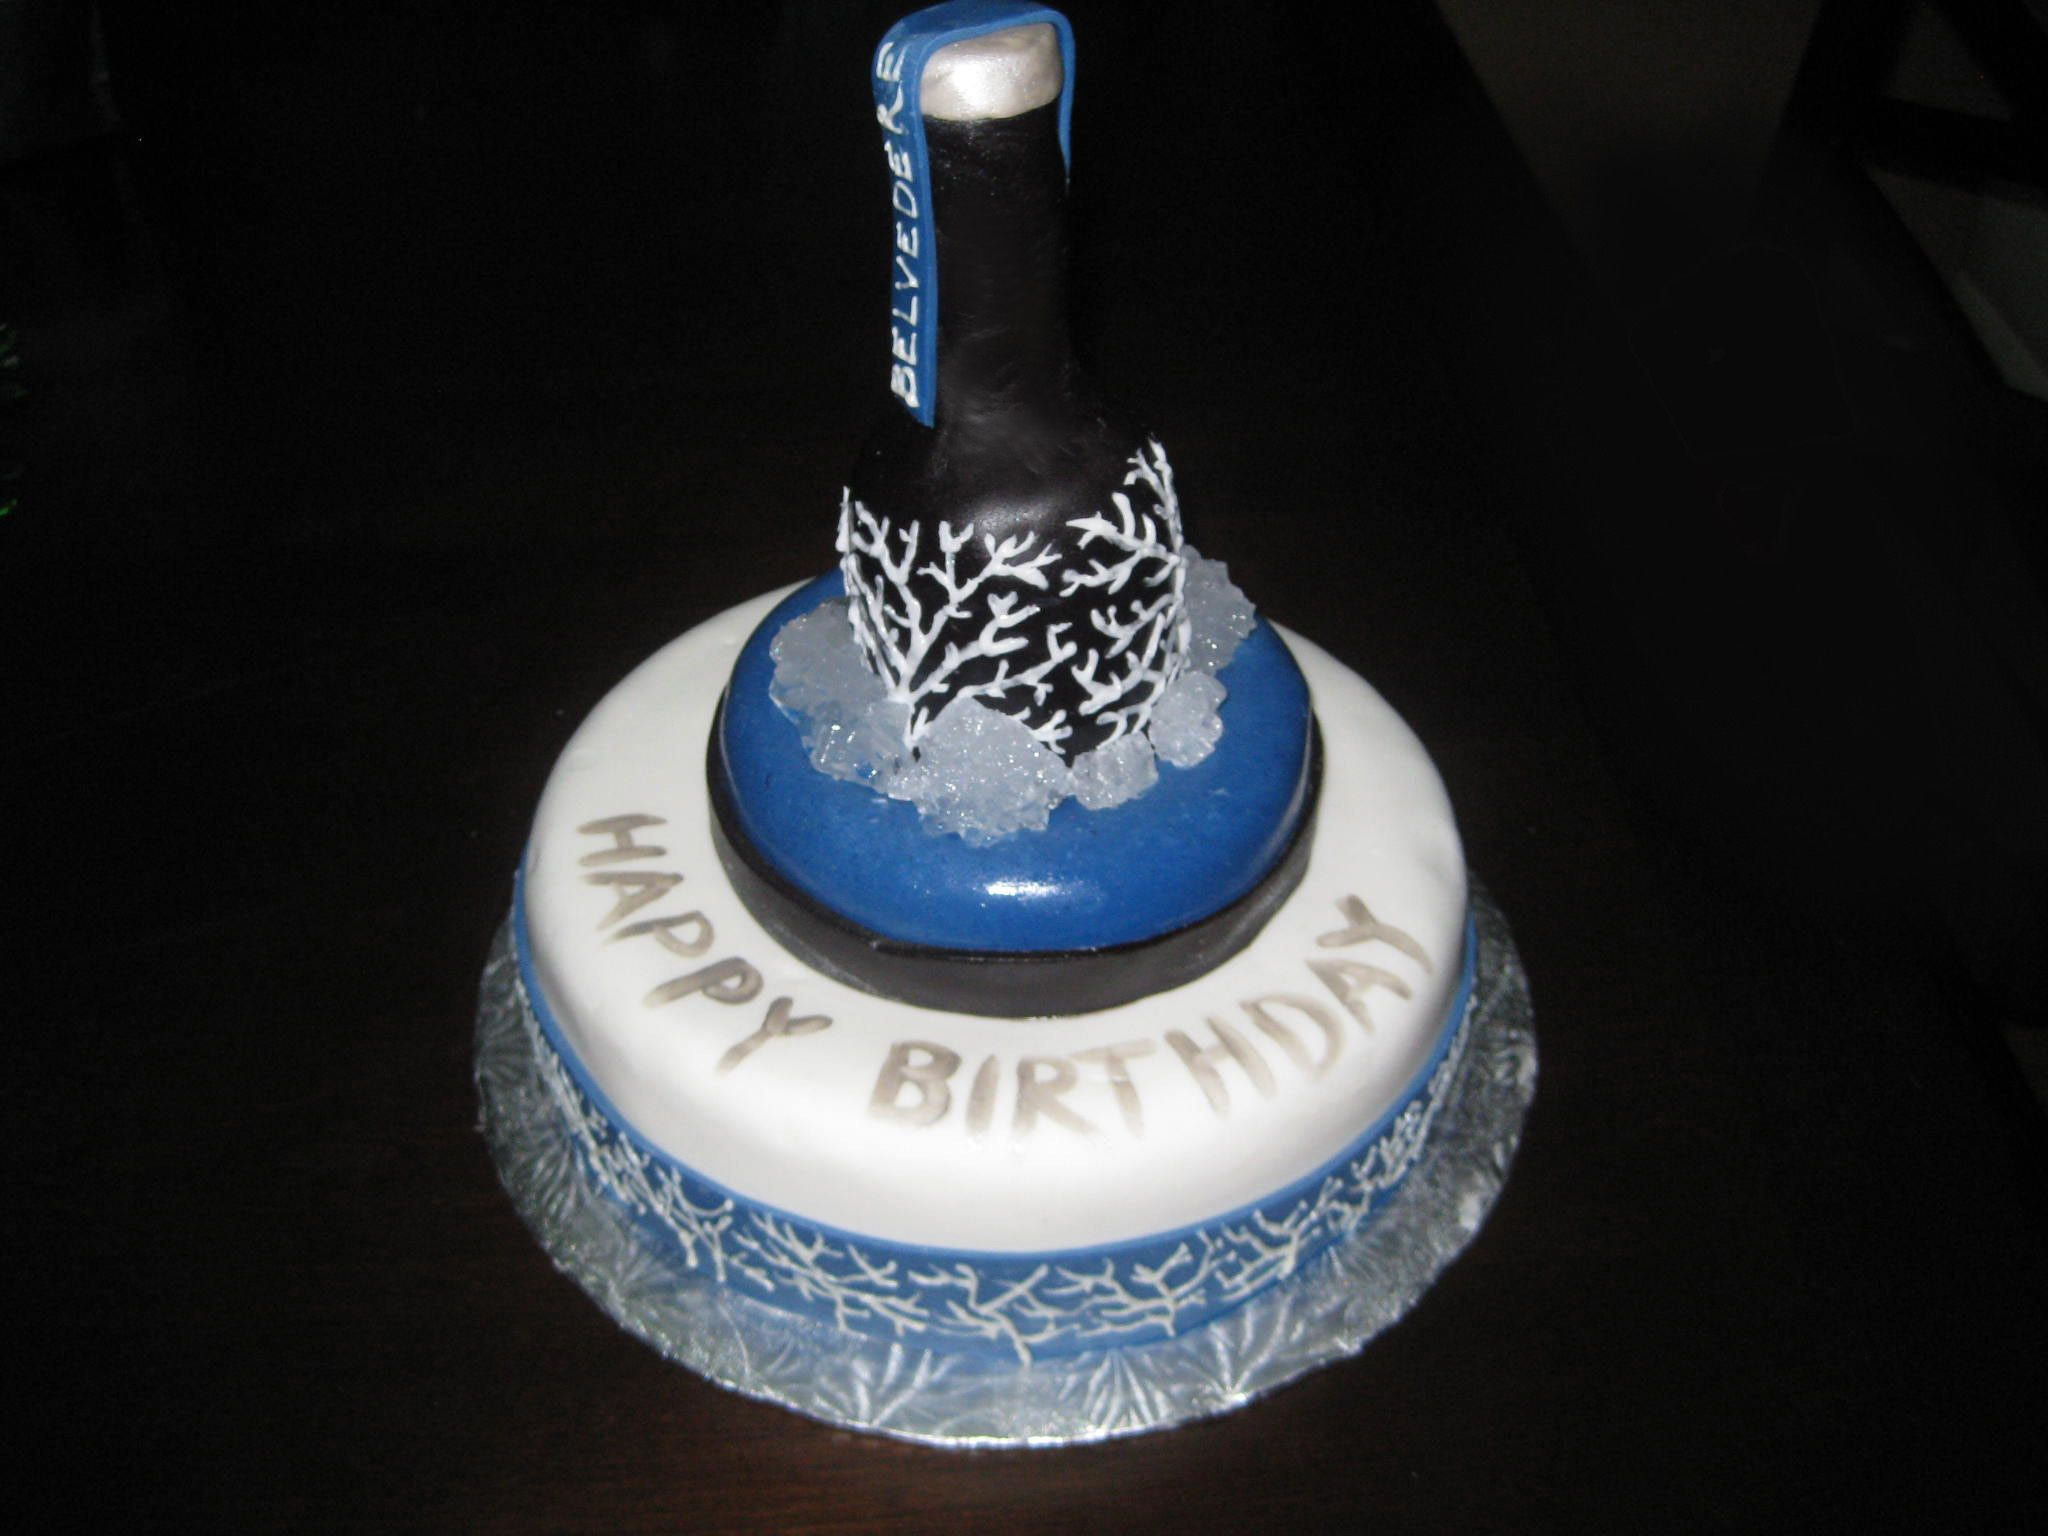 Belvedere Vodka Birthday Cake